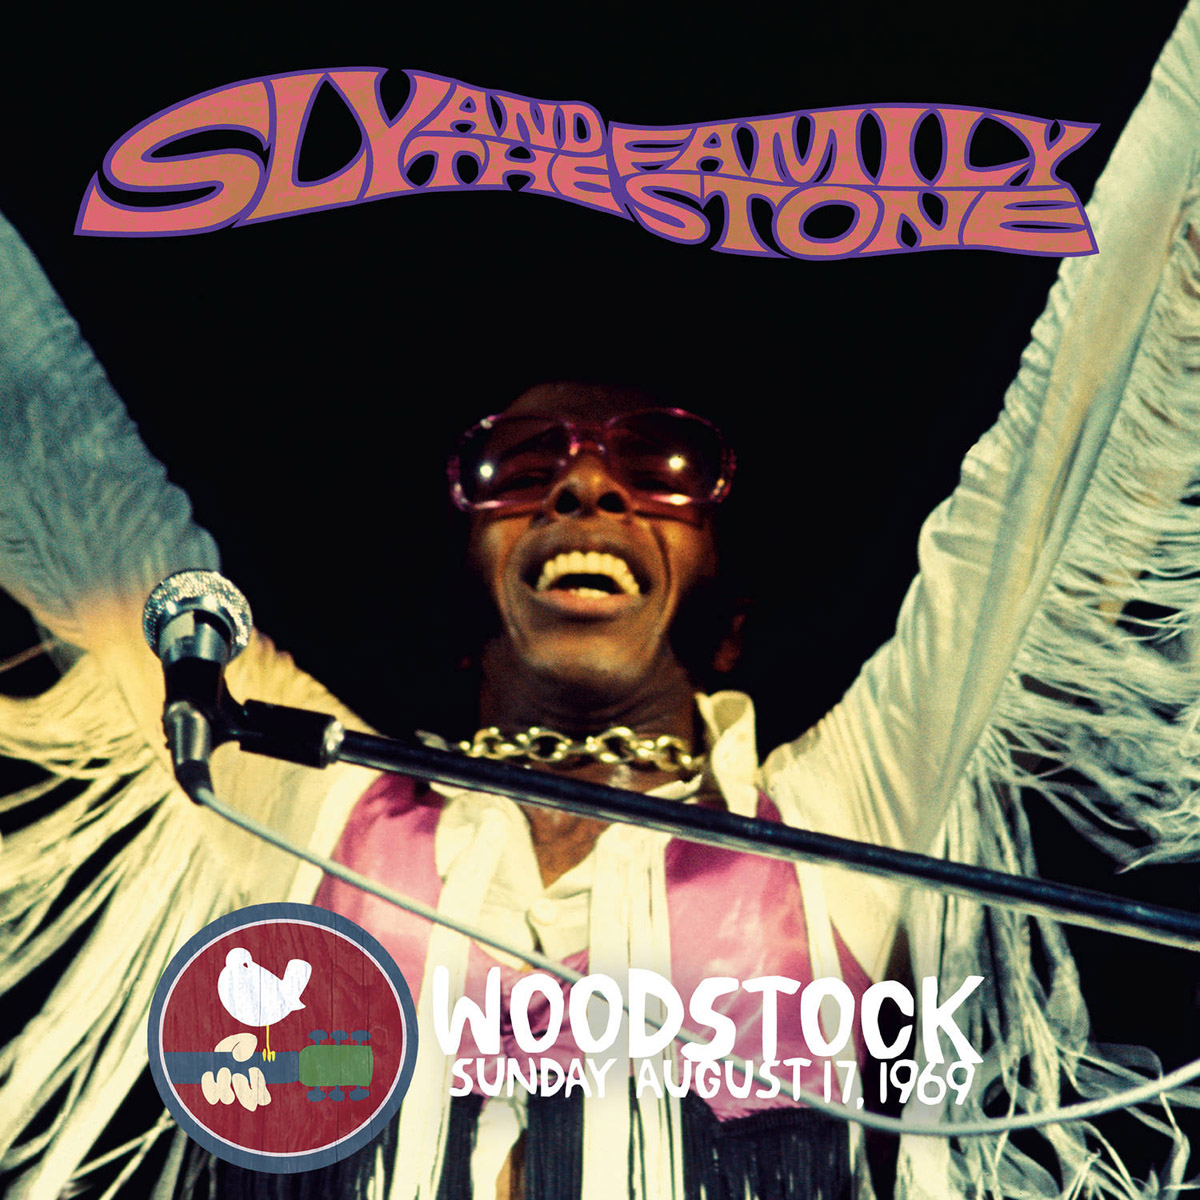 Sly & The Family Stone Stone. Woodstock Sunday August 17, 1969 (2 LP)